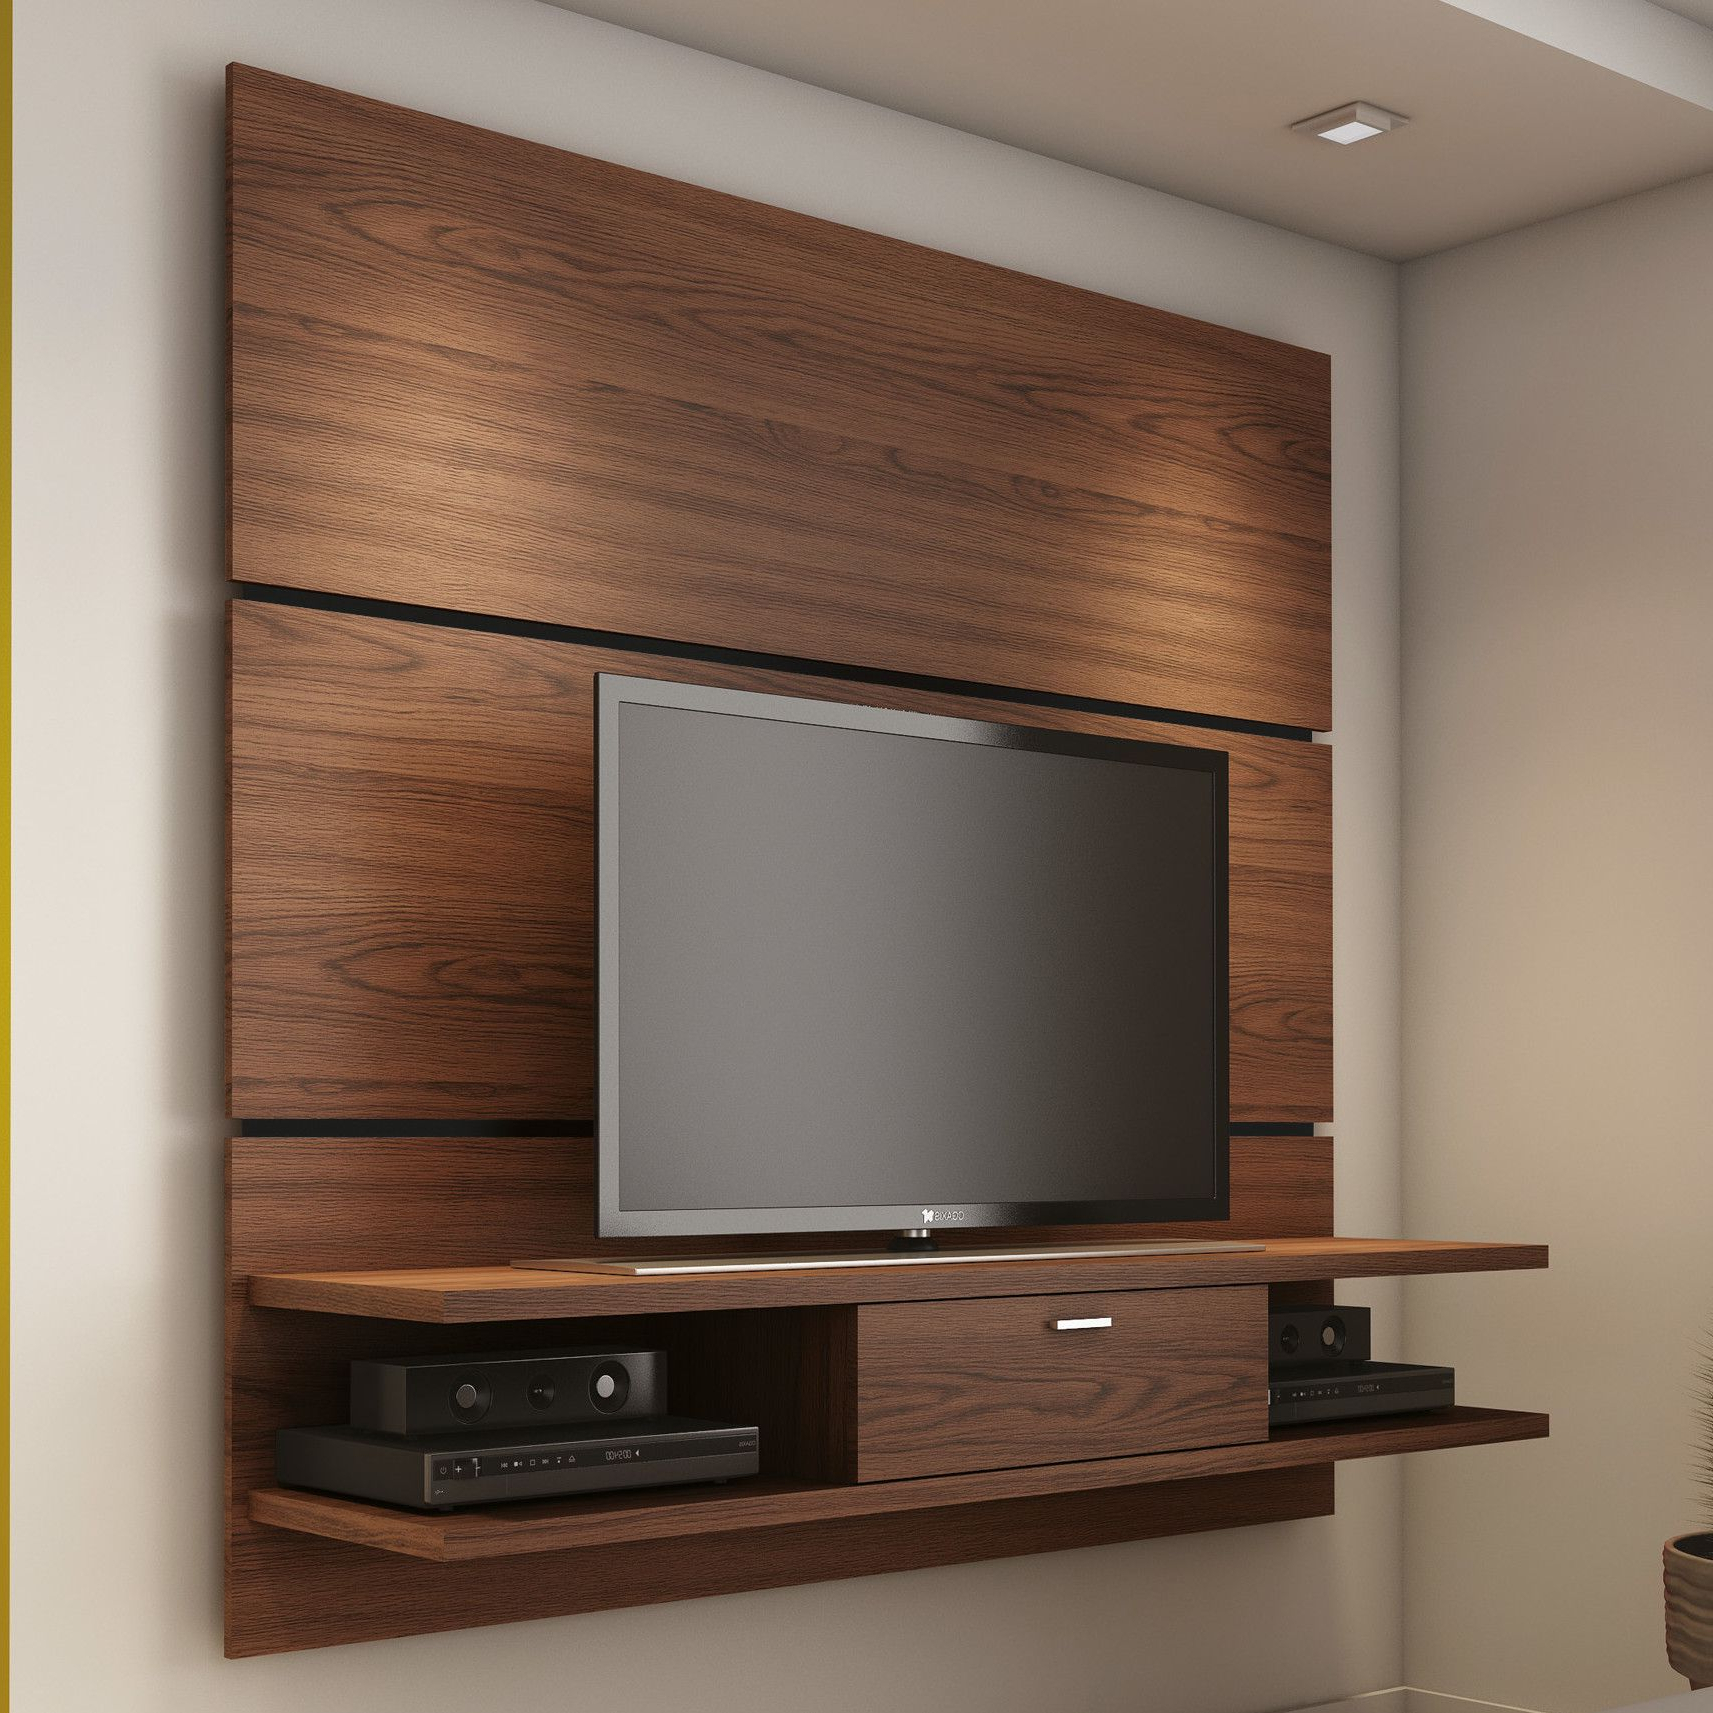 Single Shelf Tv Stands For Famous Small Bedroom Tv Unit Wooden Wall Mounted Tv Stand For Bedroom In (Gallery 6 of 20)